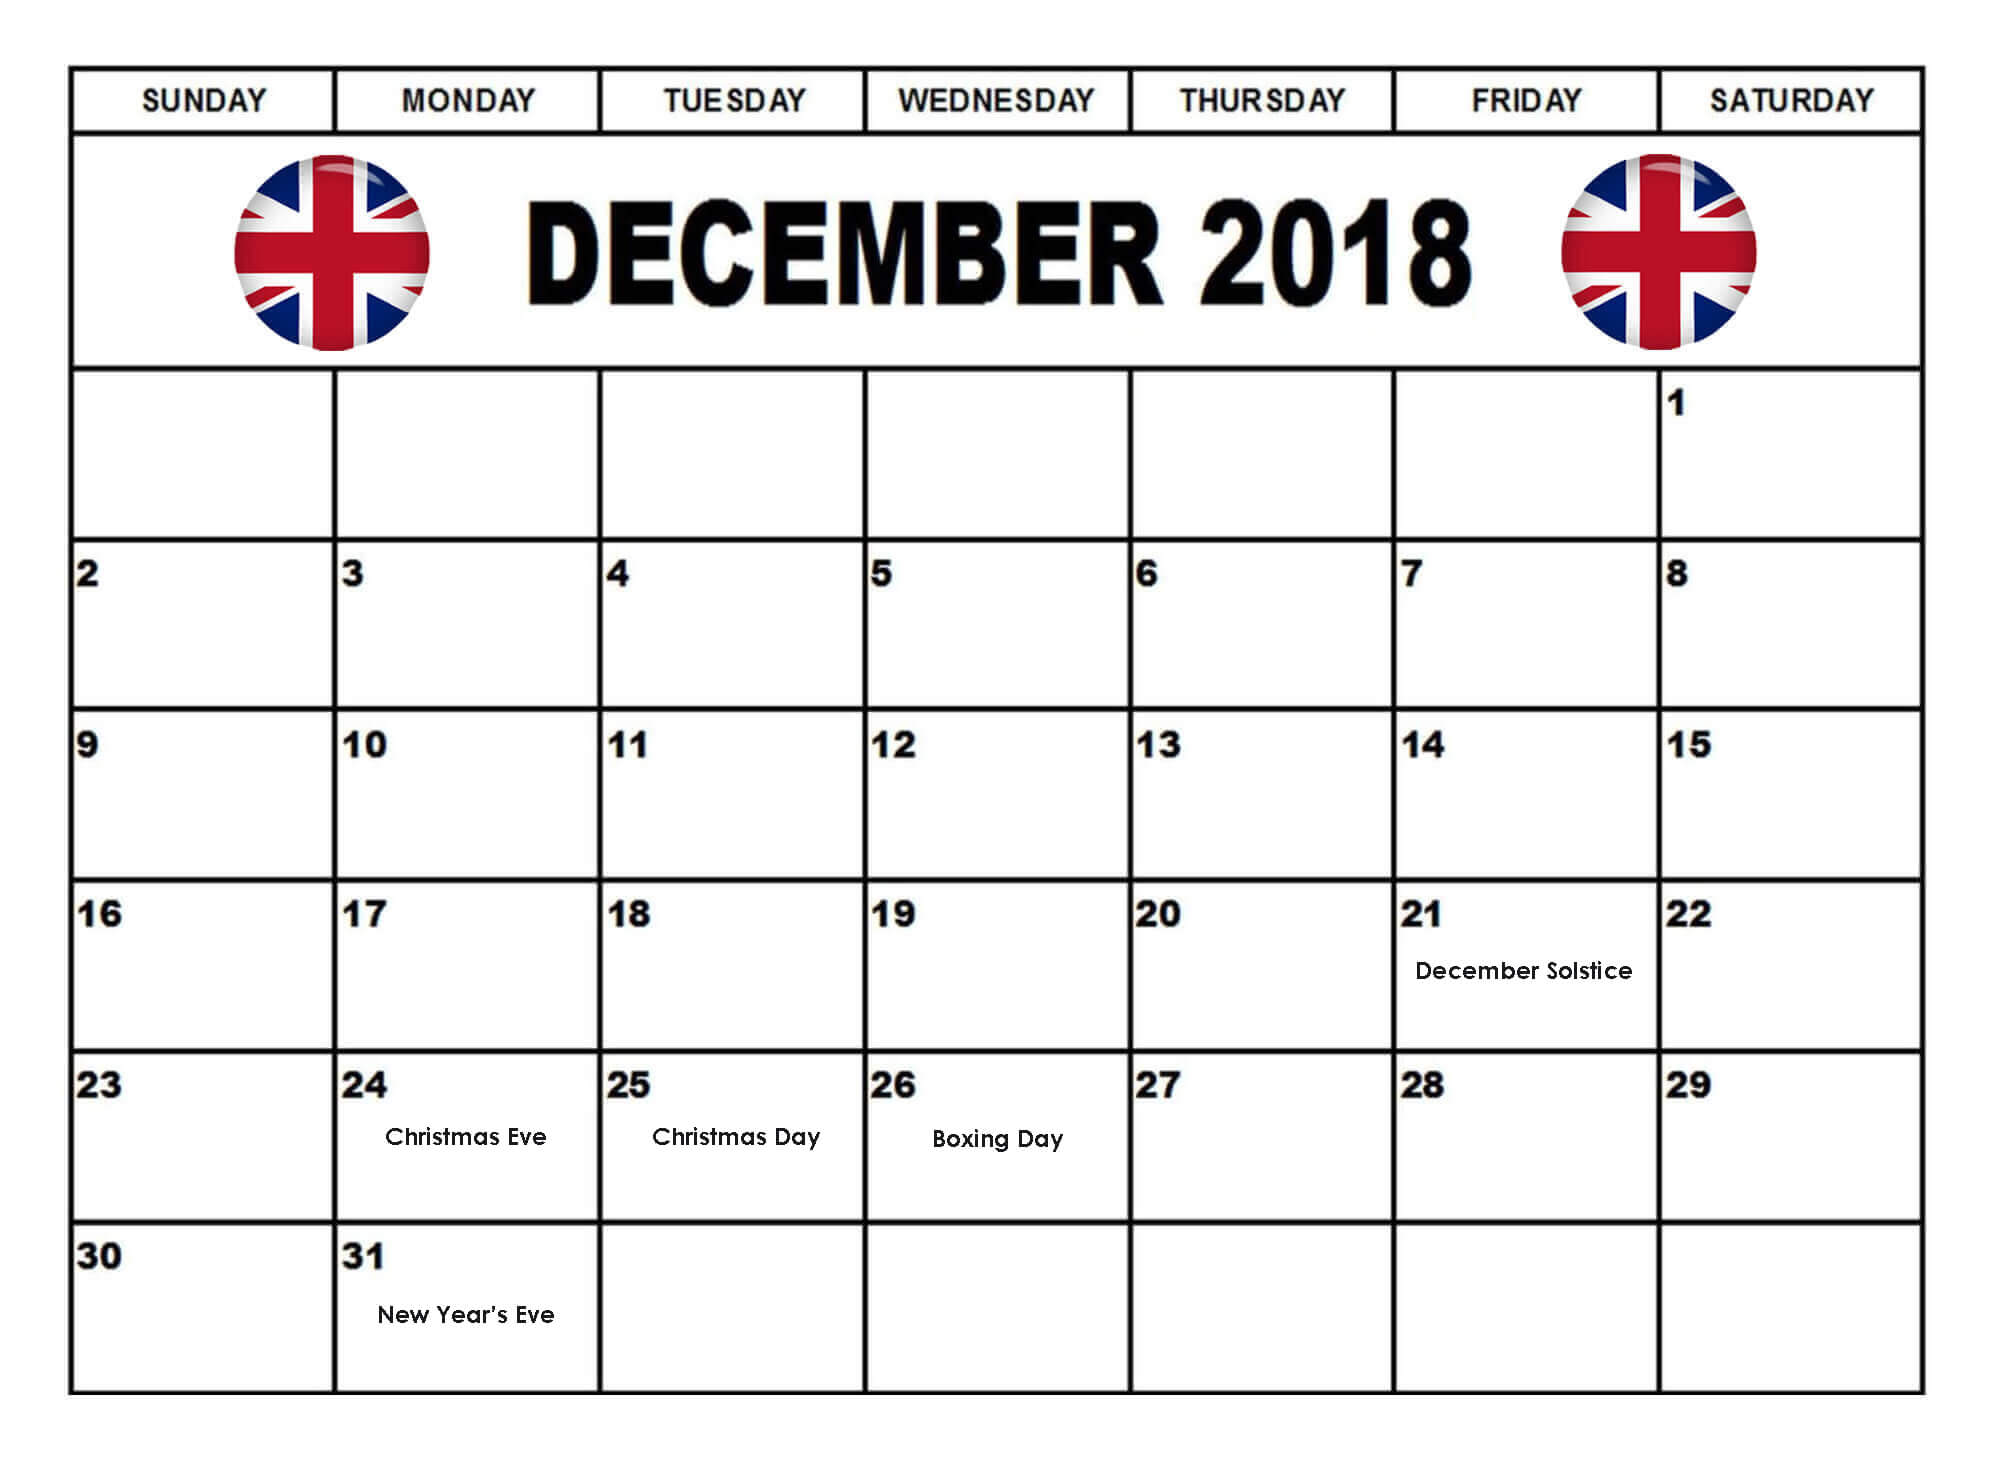 December 2018 Calendar UK Public Holidays